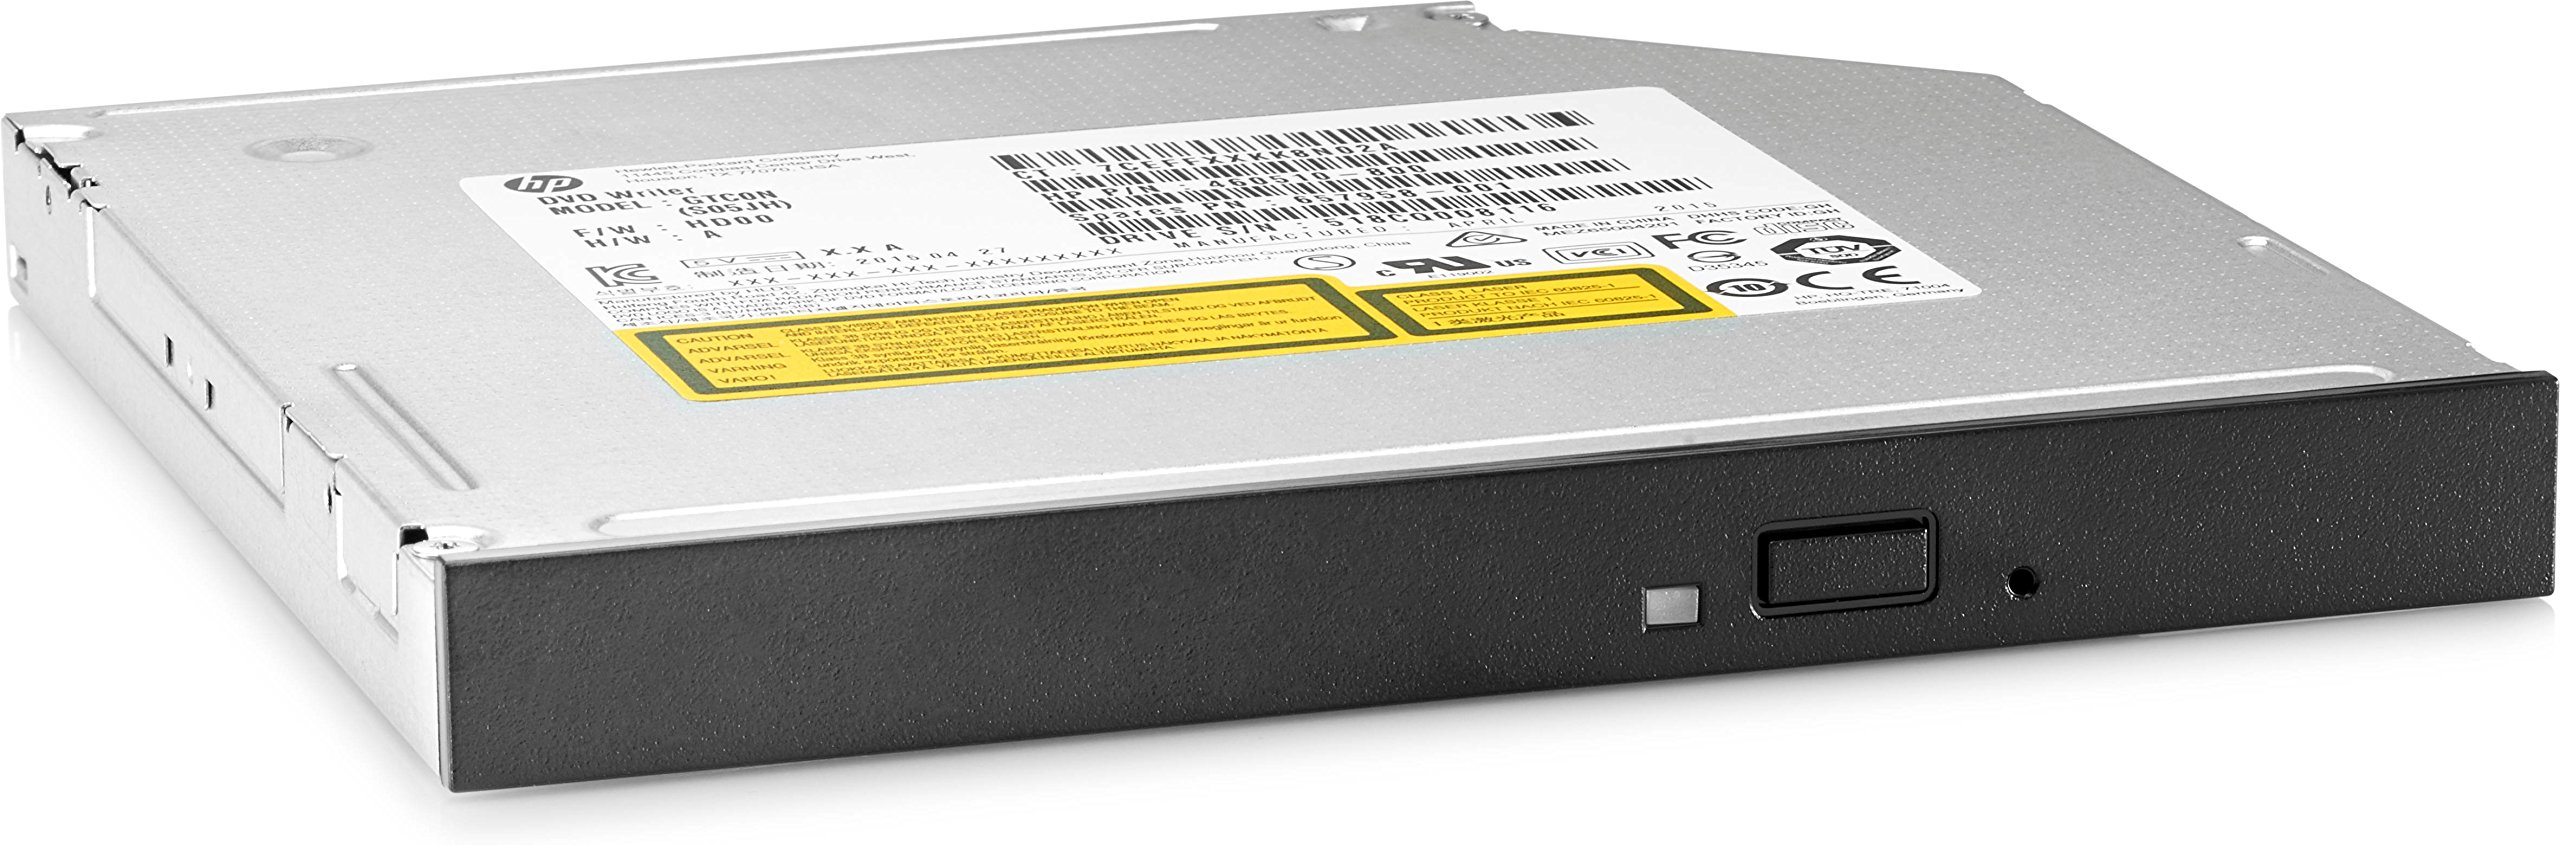 HP Office DVDRW (R DL) / DVD-RAM Drive - Plug-in Module Optical Drives N1M42AA